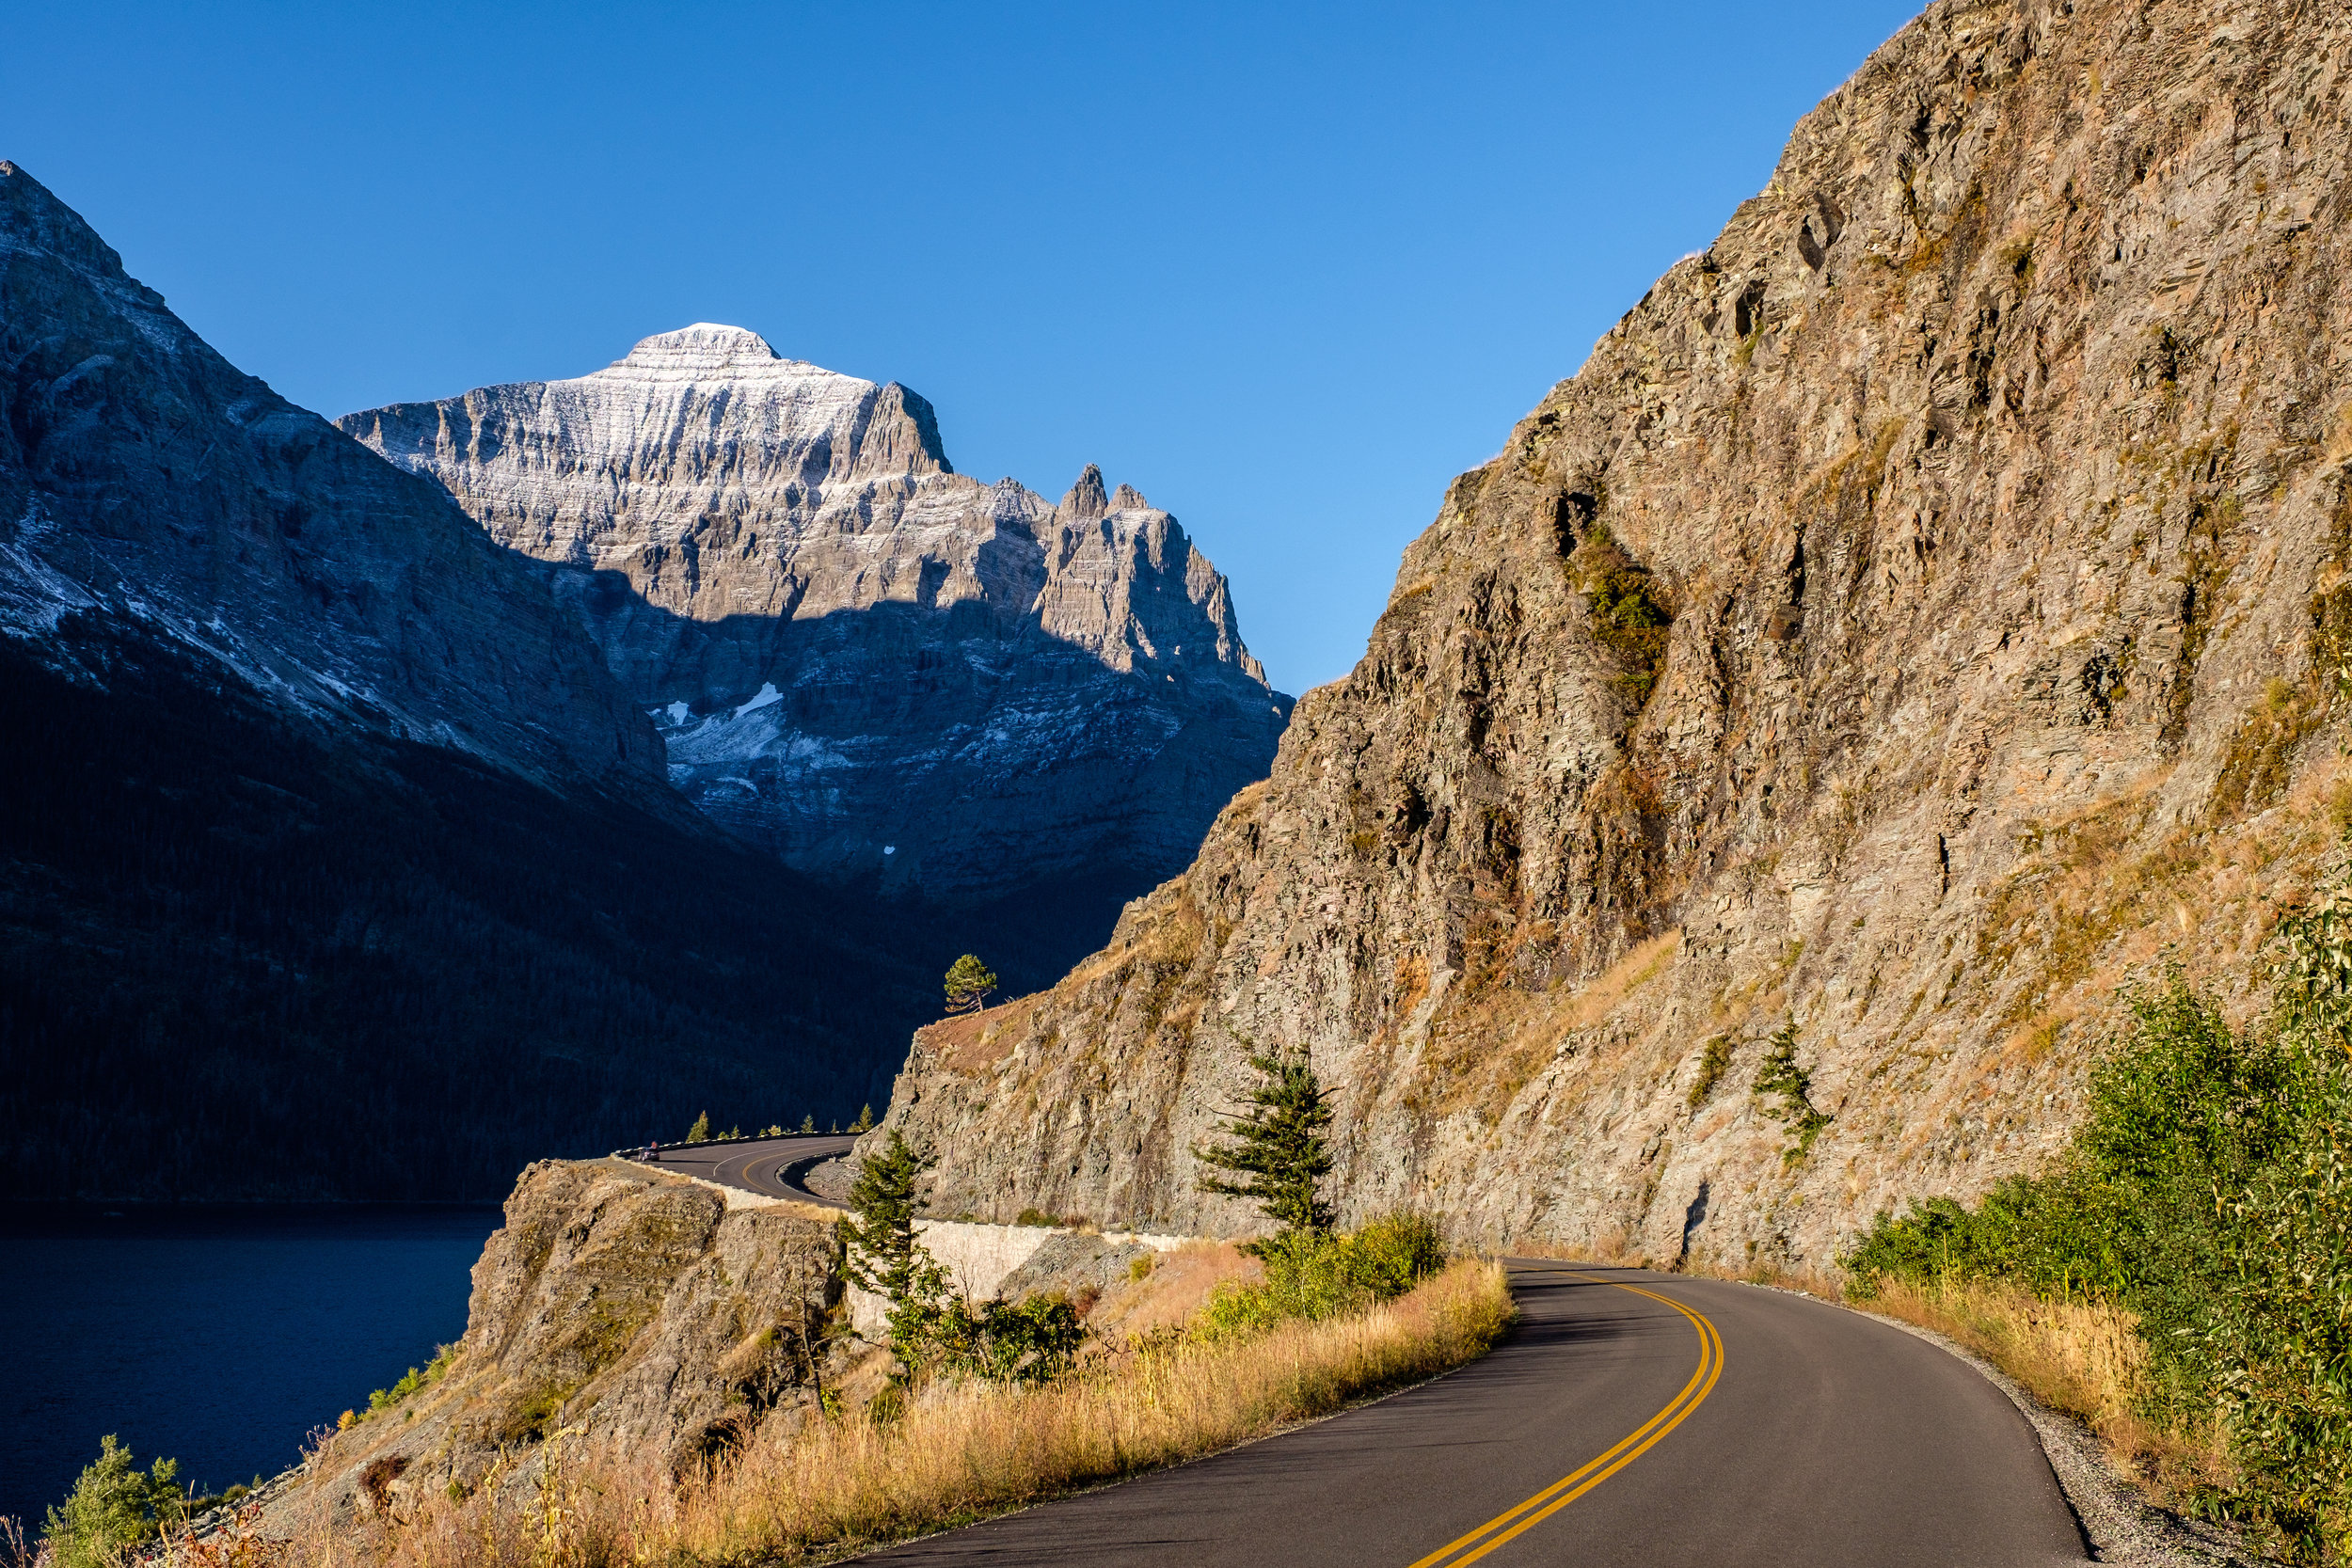 Going-to-the-Sun Road in Glacier National Park, Montana.